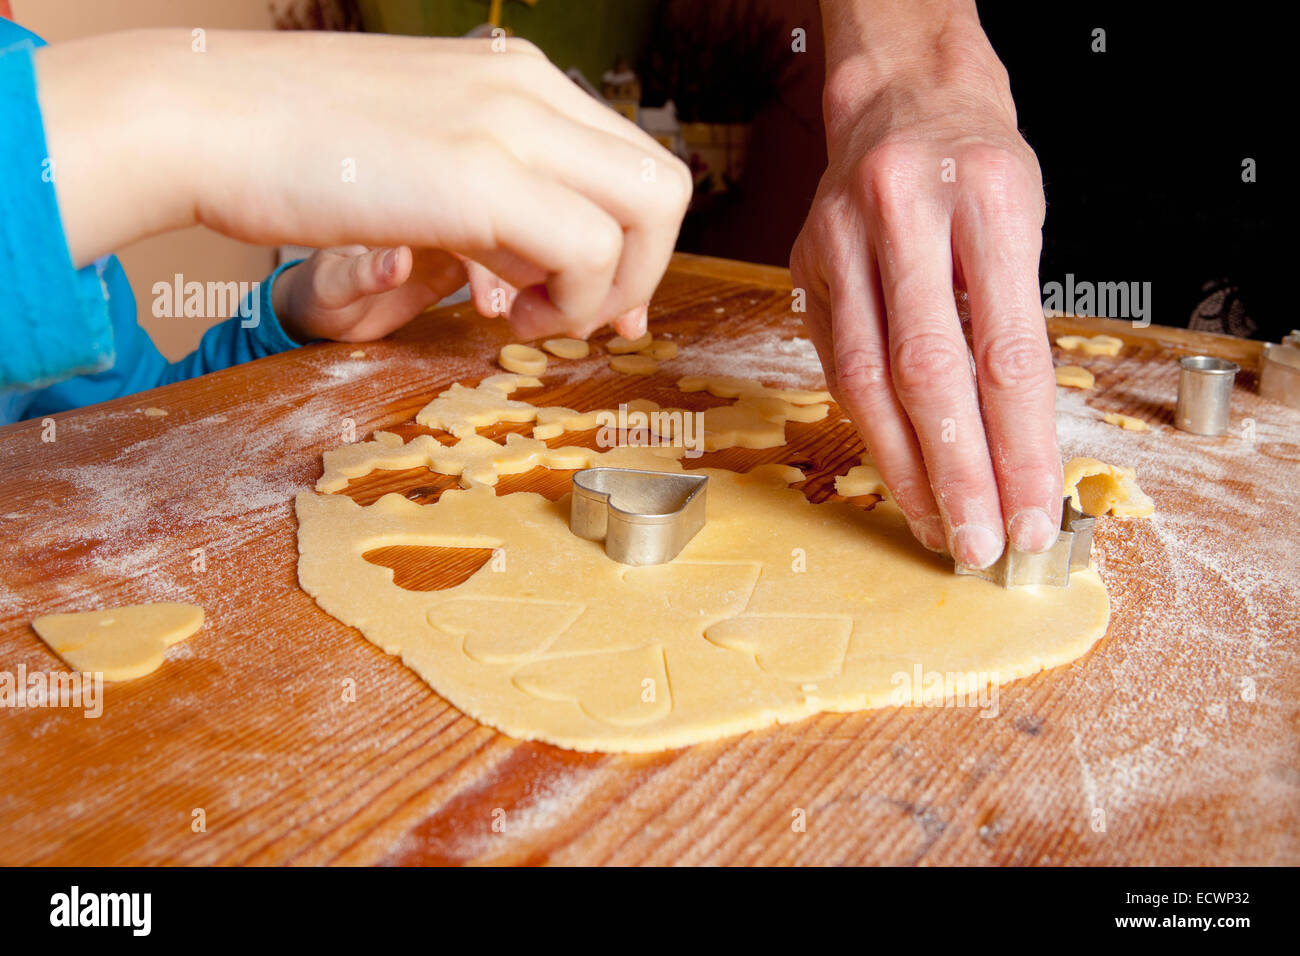 Traditional Czech Christmas Baking - Shaping Dough with Forms - Stock Image